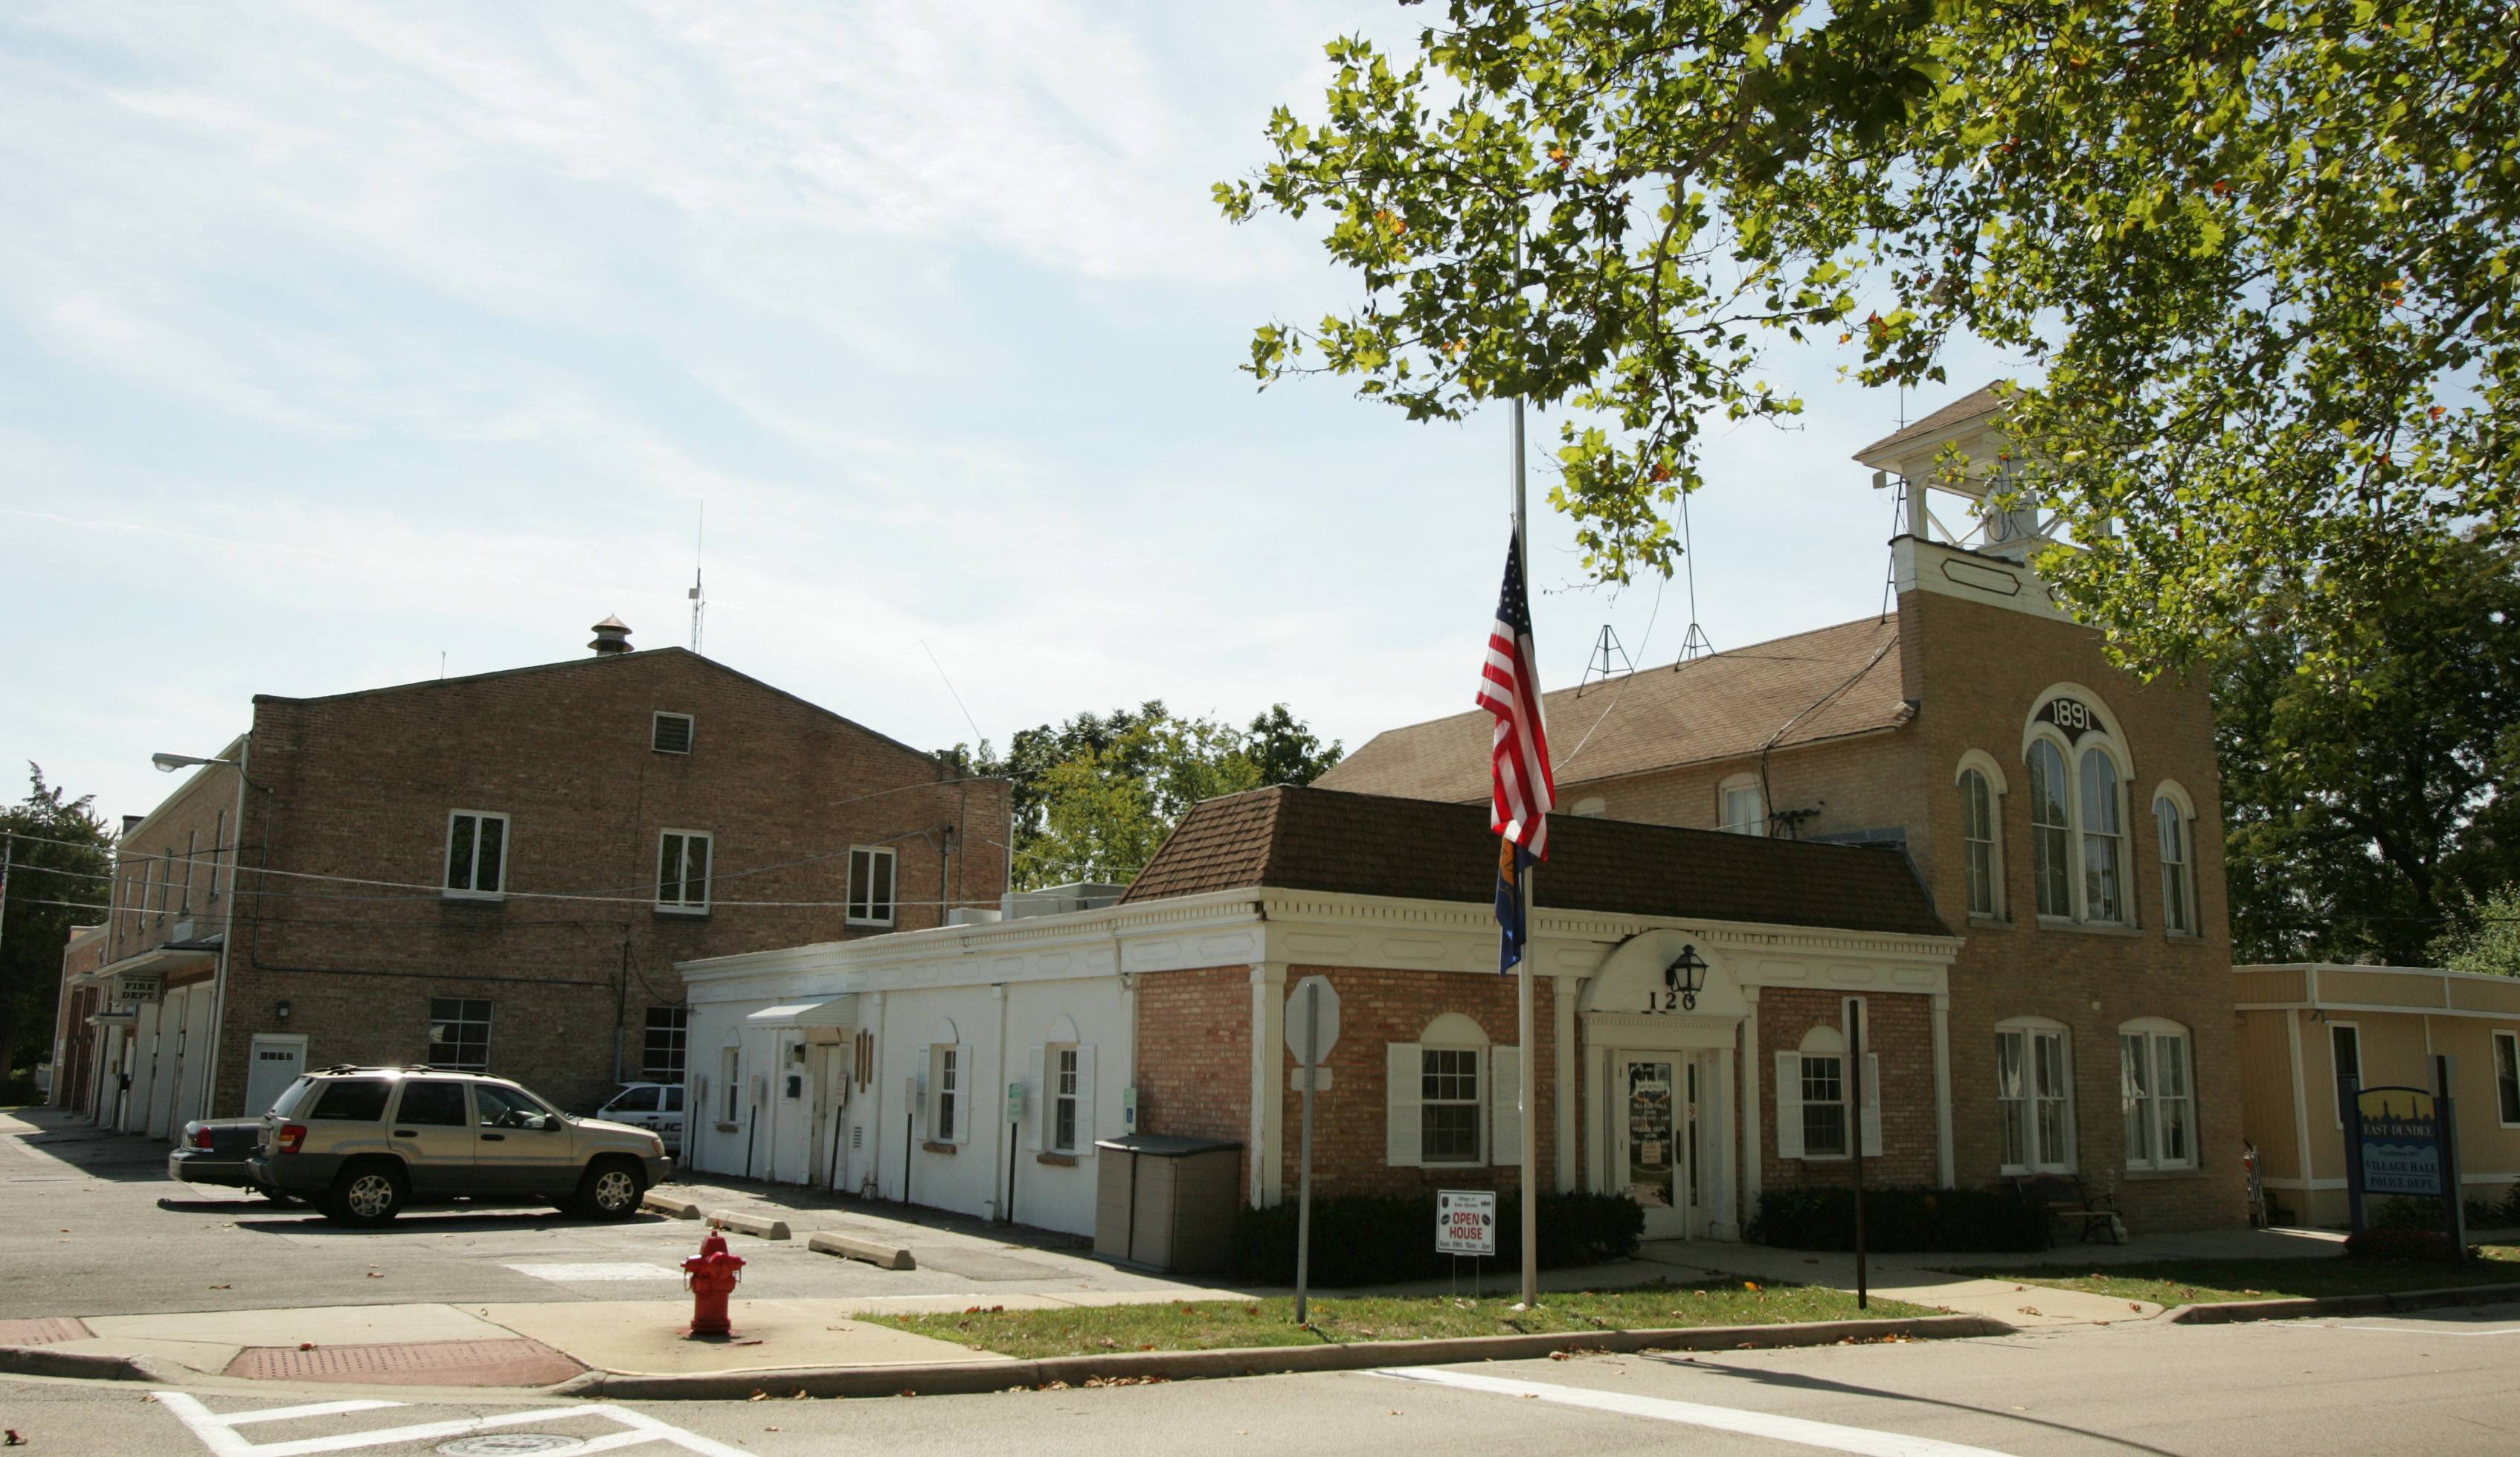 East Dundee's village hall, police and fire departments were previously located all in the same square block in downtown East Dundee. With the fire department moving to a new station, its former space will be part of a renovation of the municipal campus.